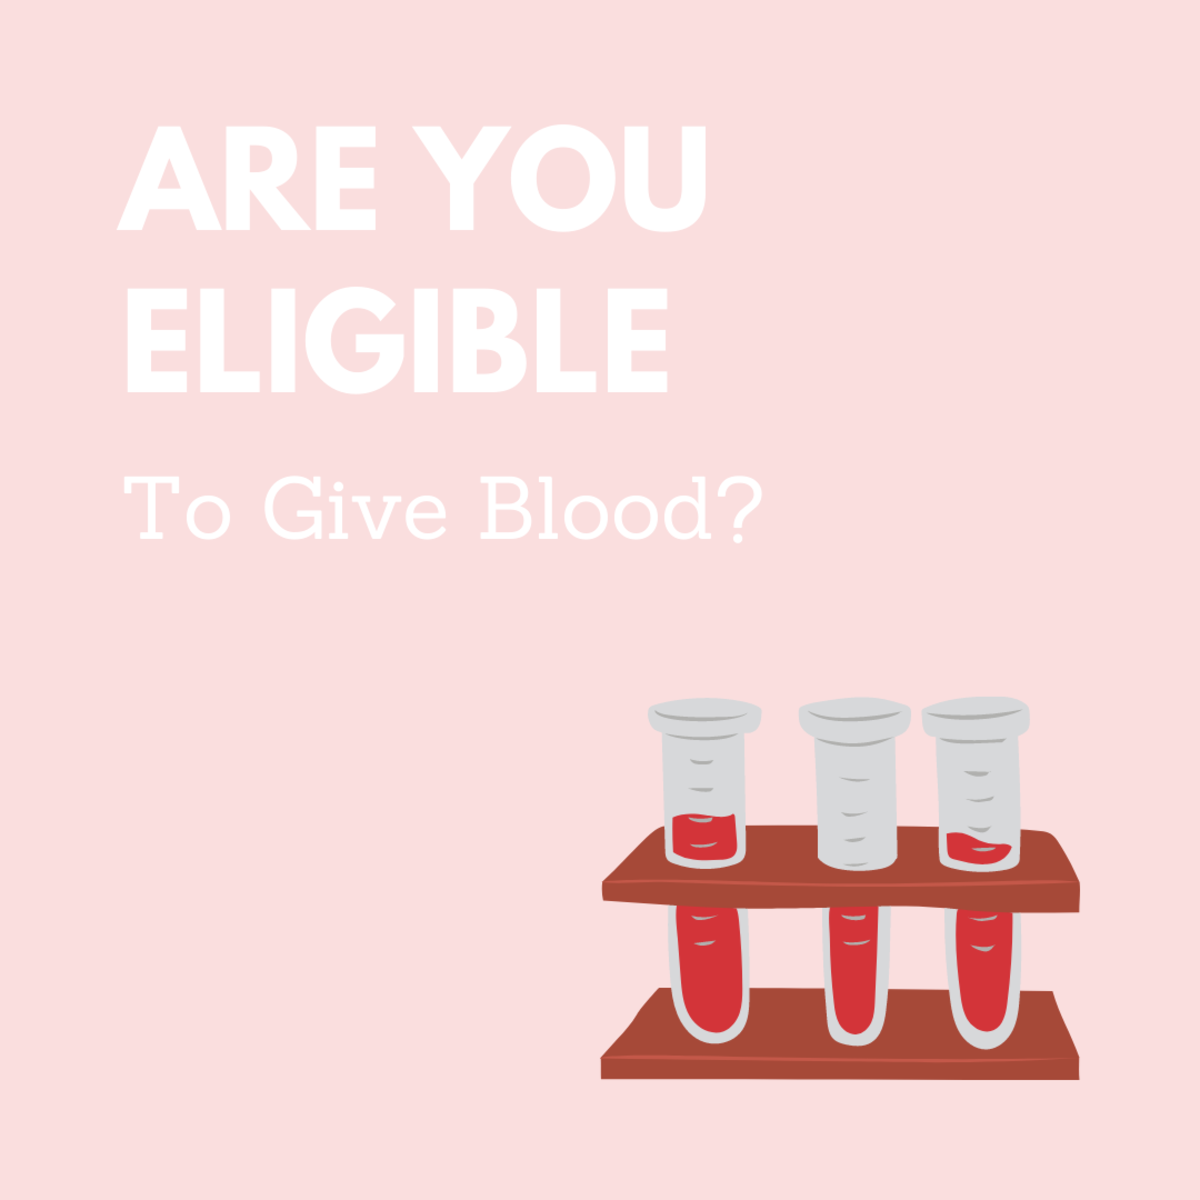 Blood Donation Restrictions: Are You Eligible to Give Blood?